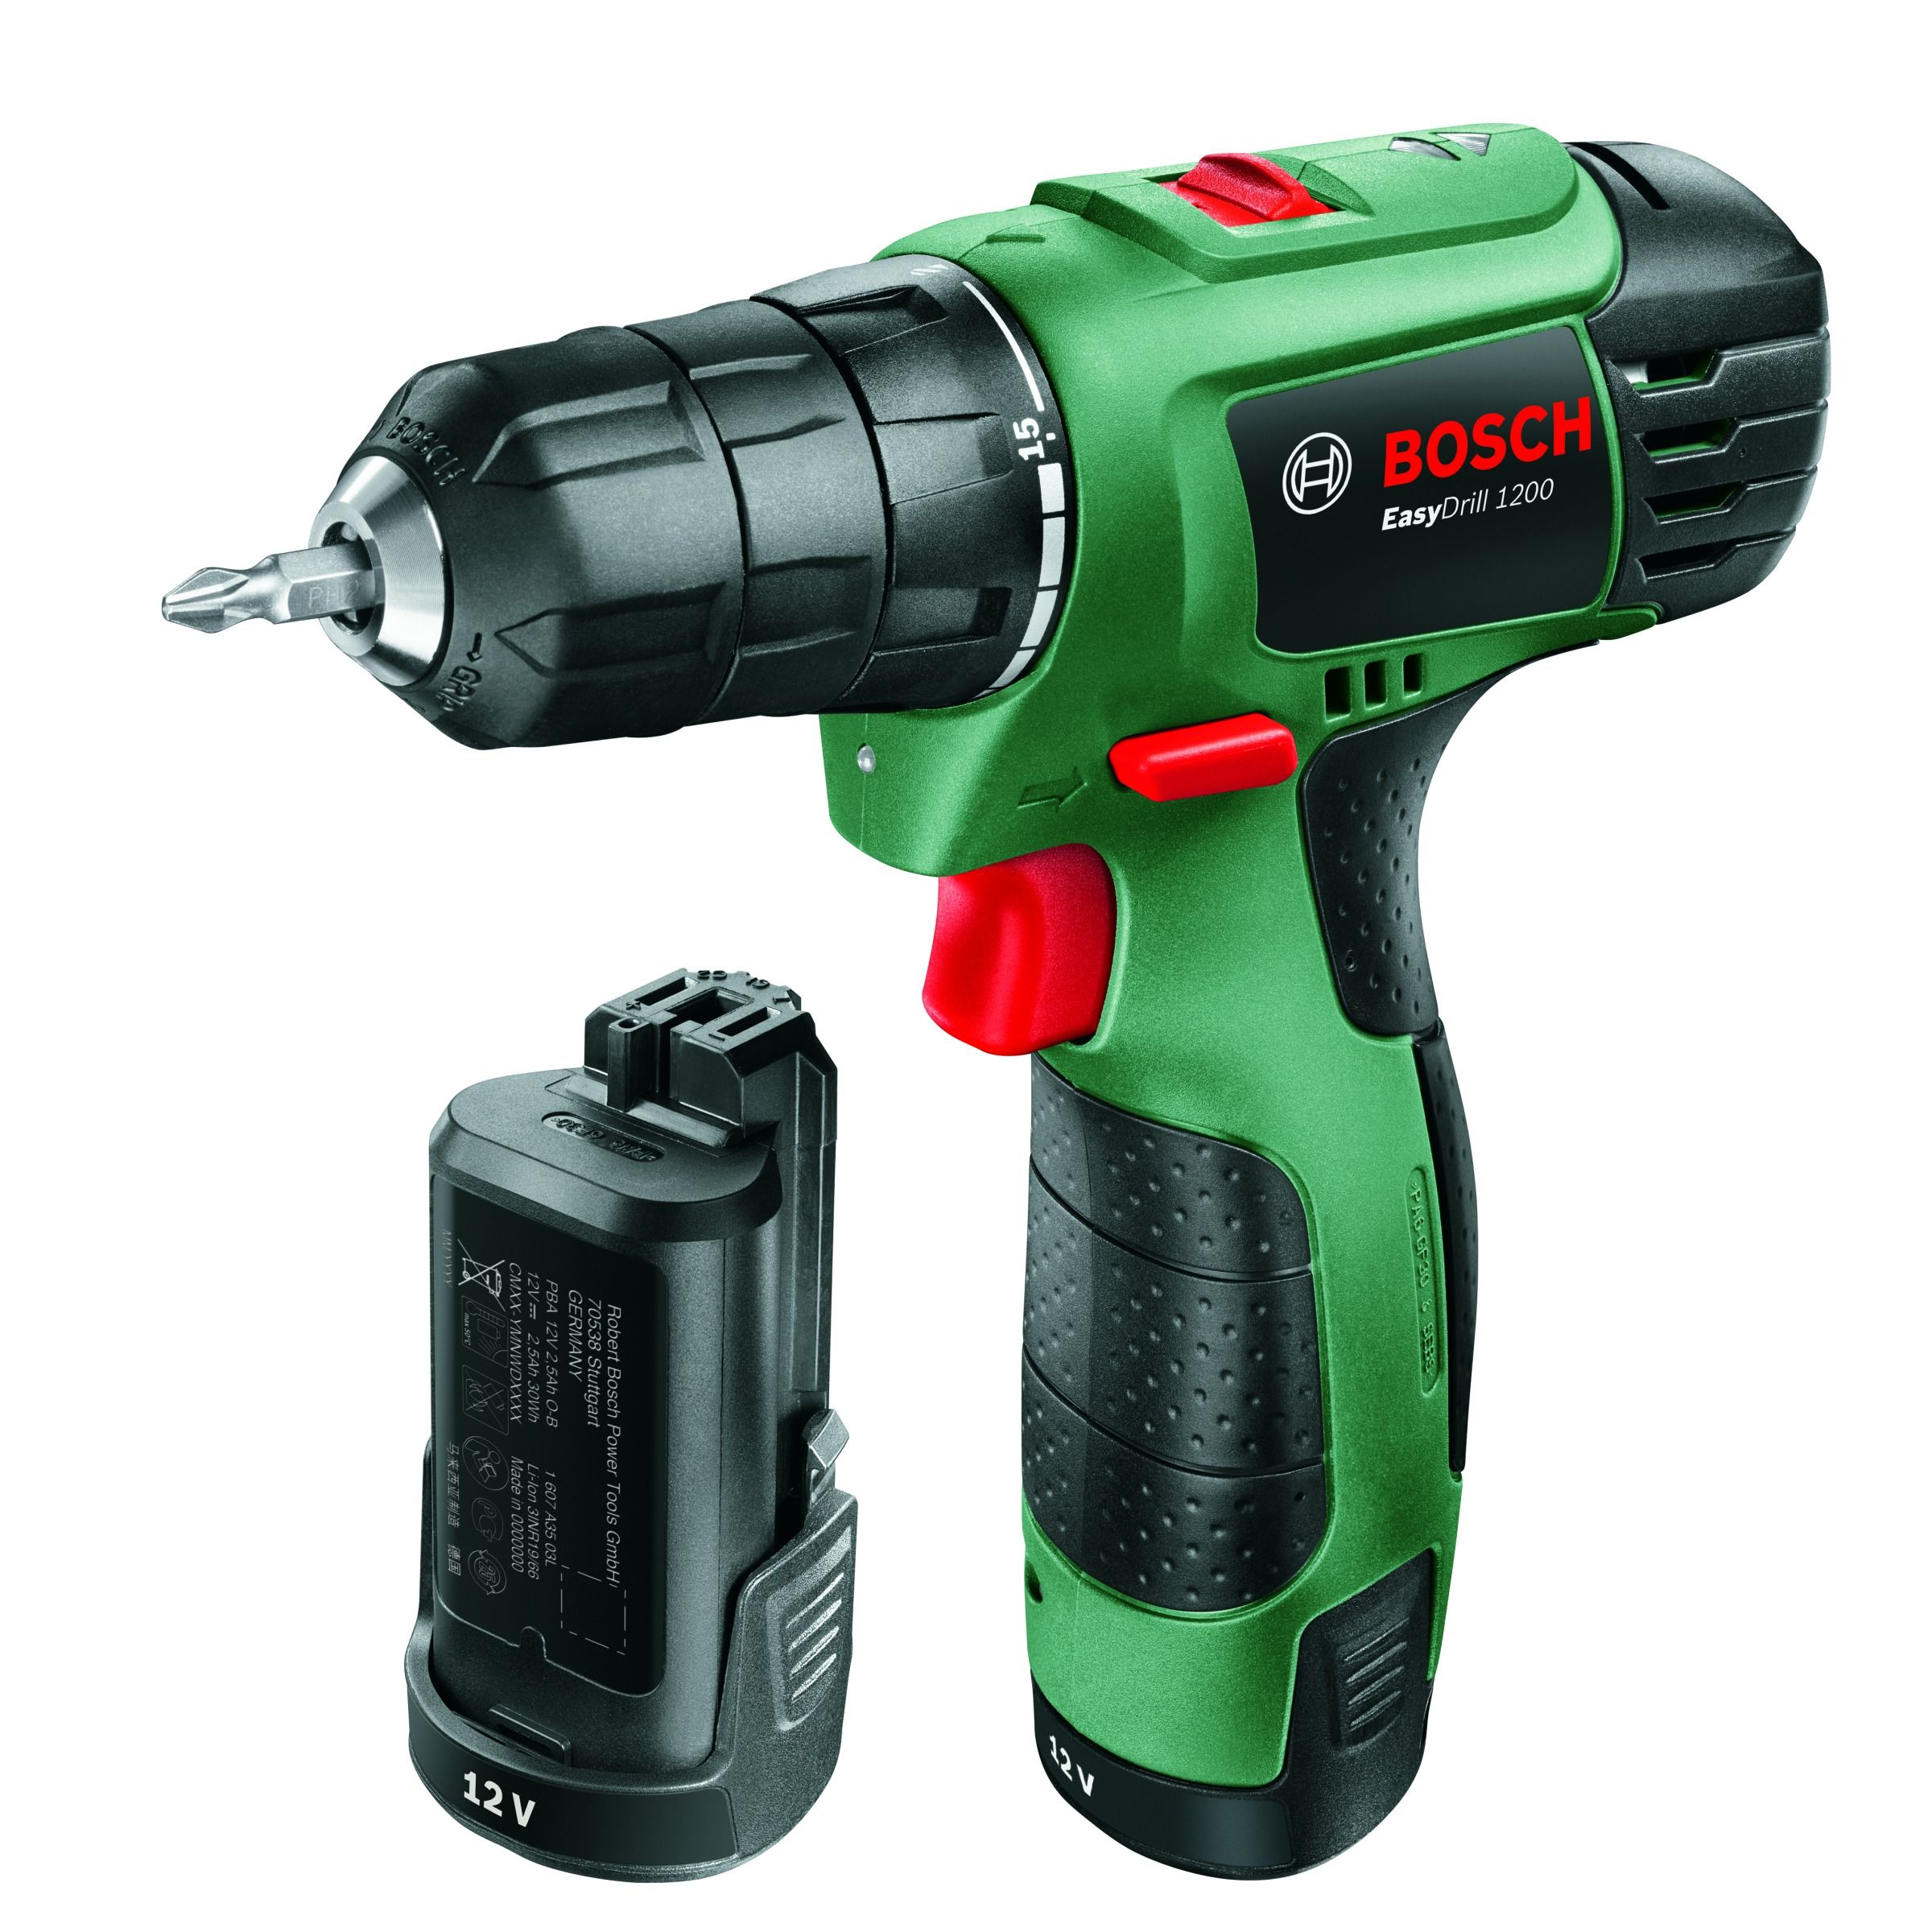 Bosch Accuboormachine Easydrill 1200 Products In 2019